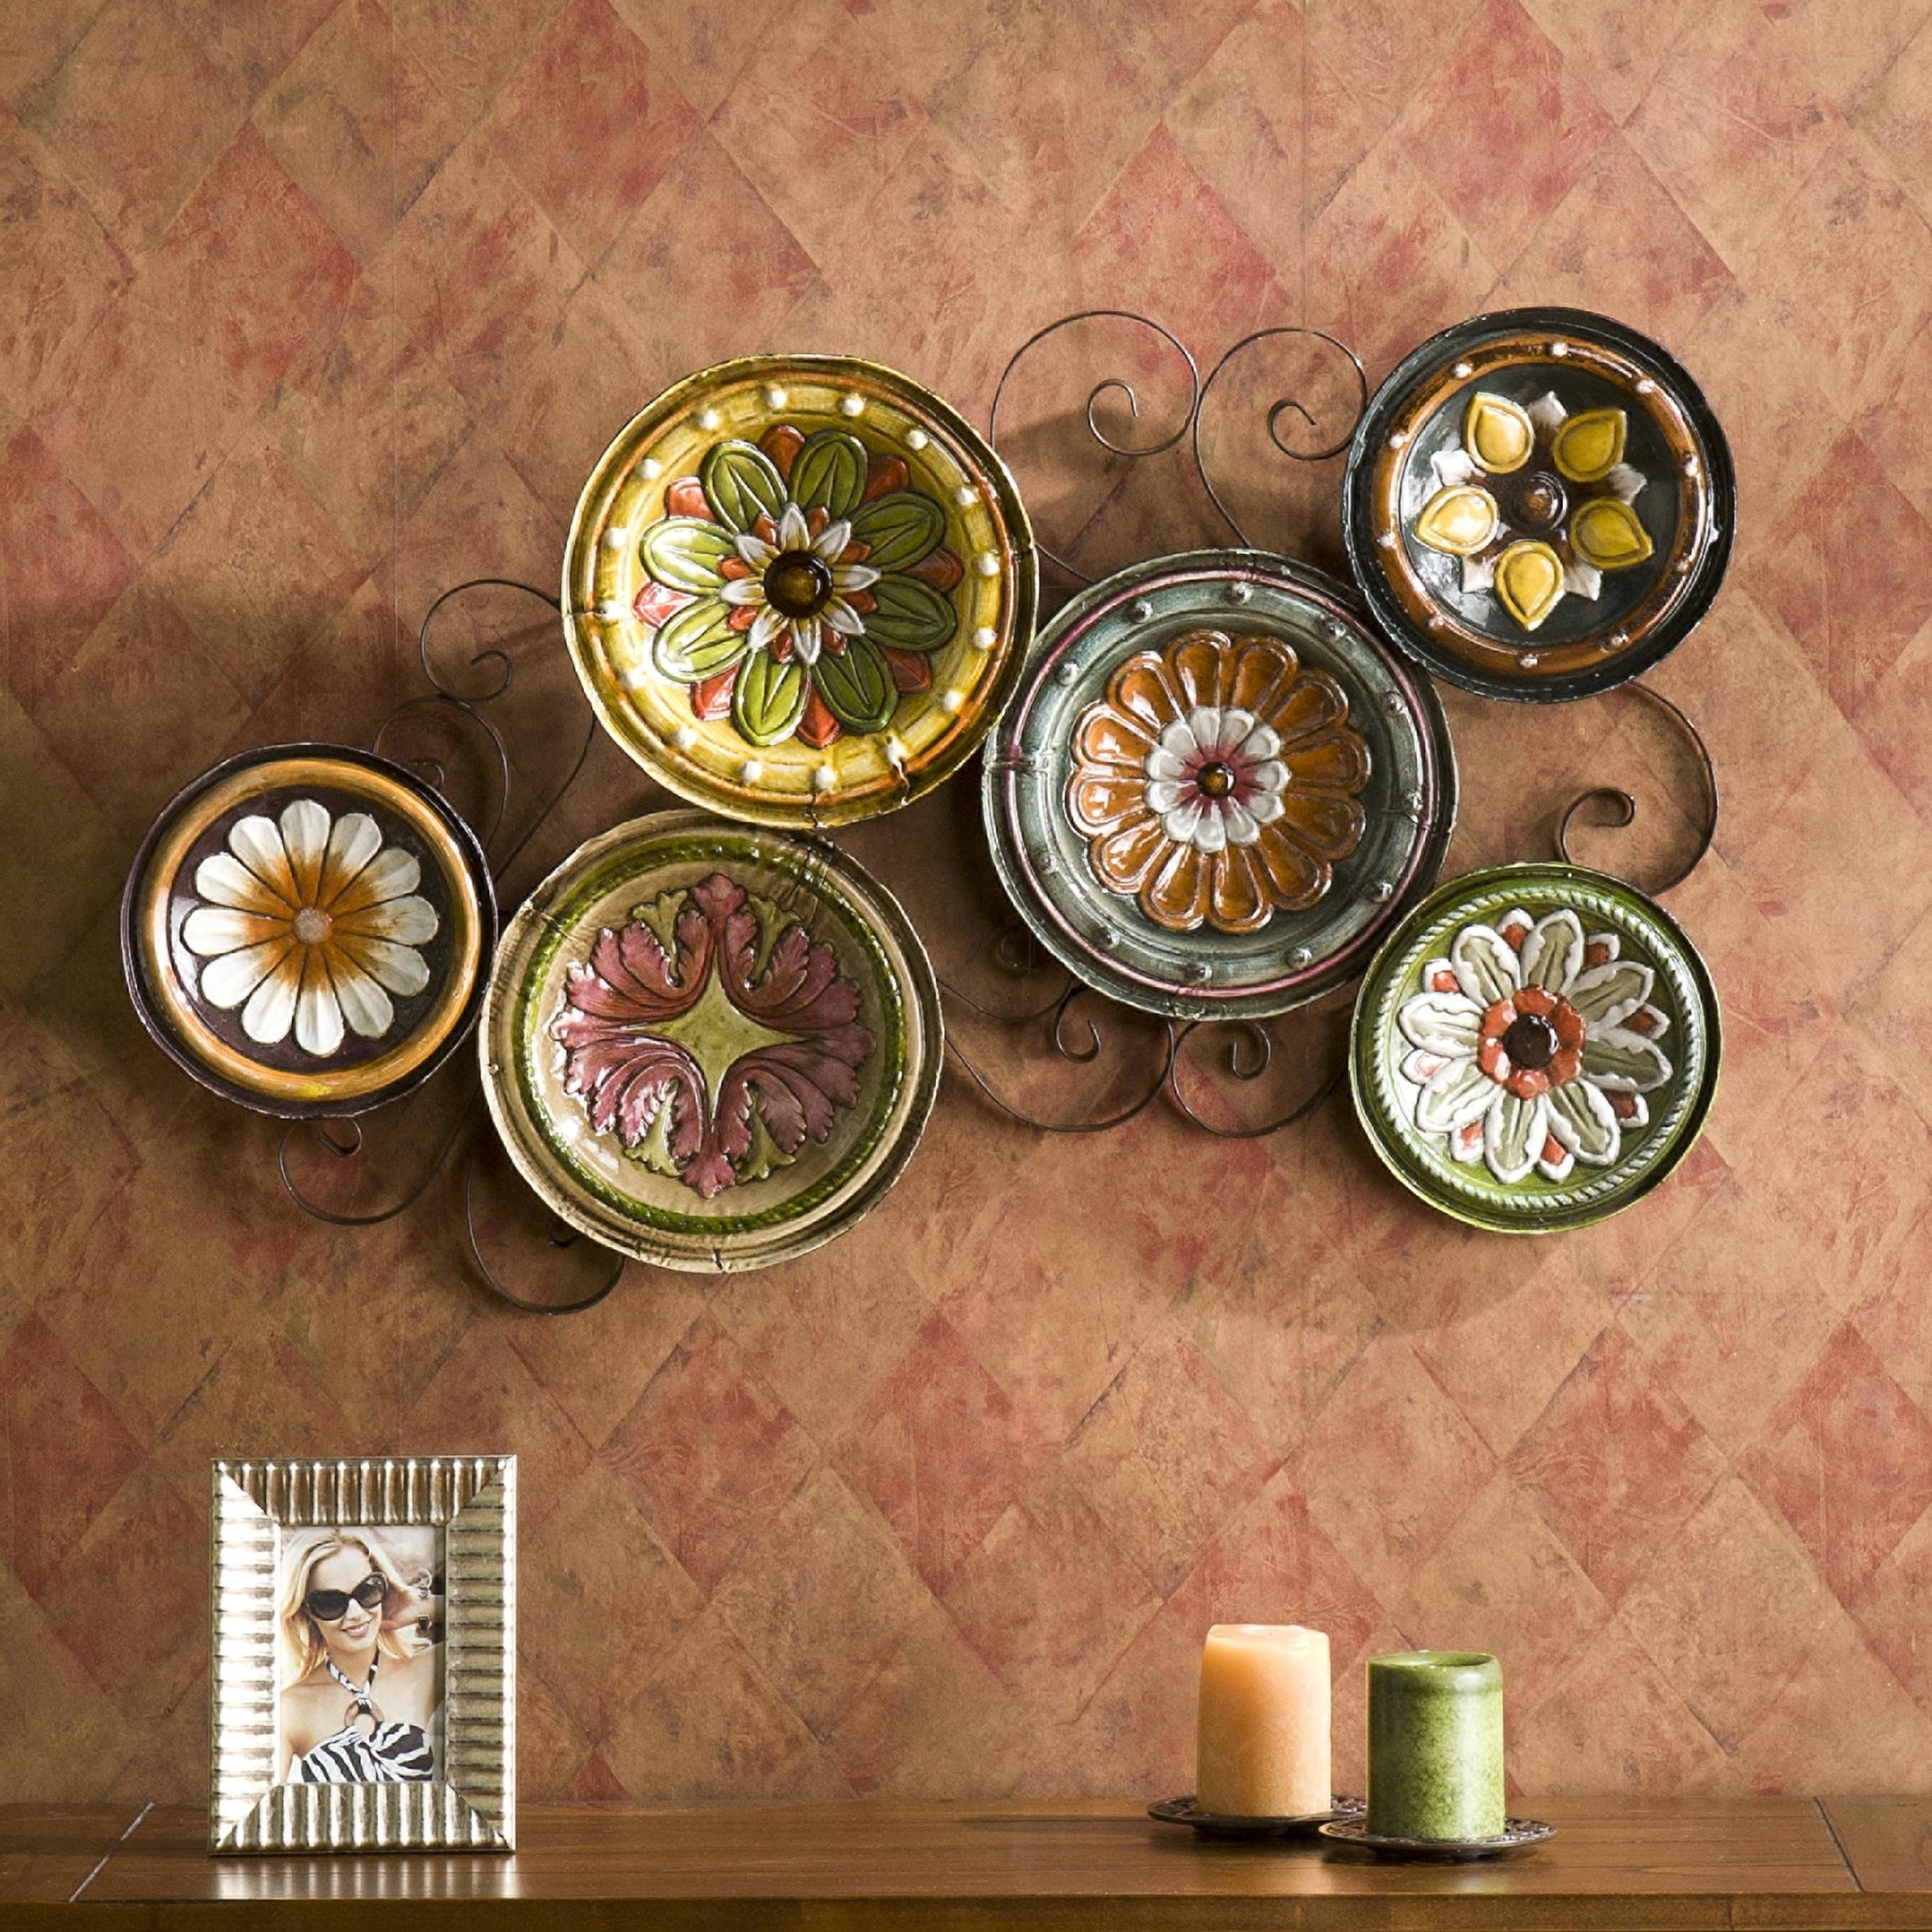 Decorative Plates For Wall Art Throughout Most Recent Wonderful Decorative Plates For Wall Wallpapers (Gallery 7 of 15)